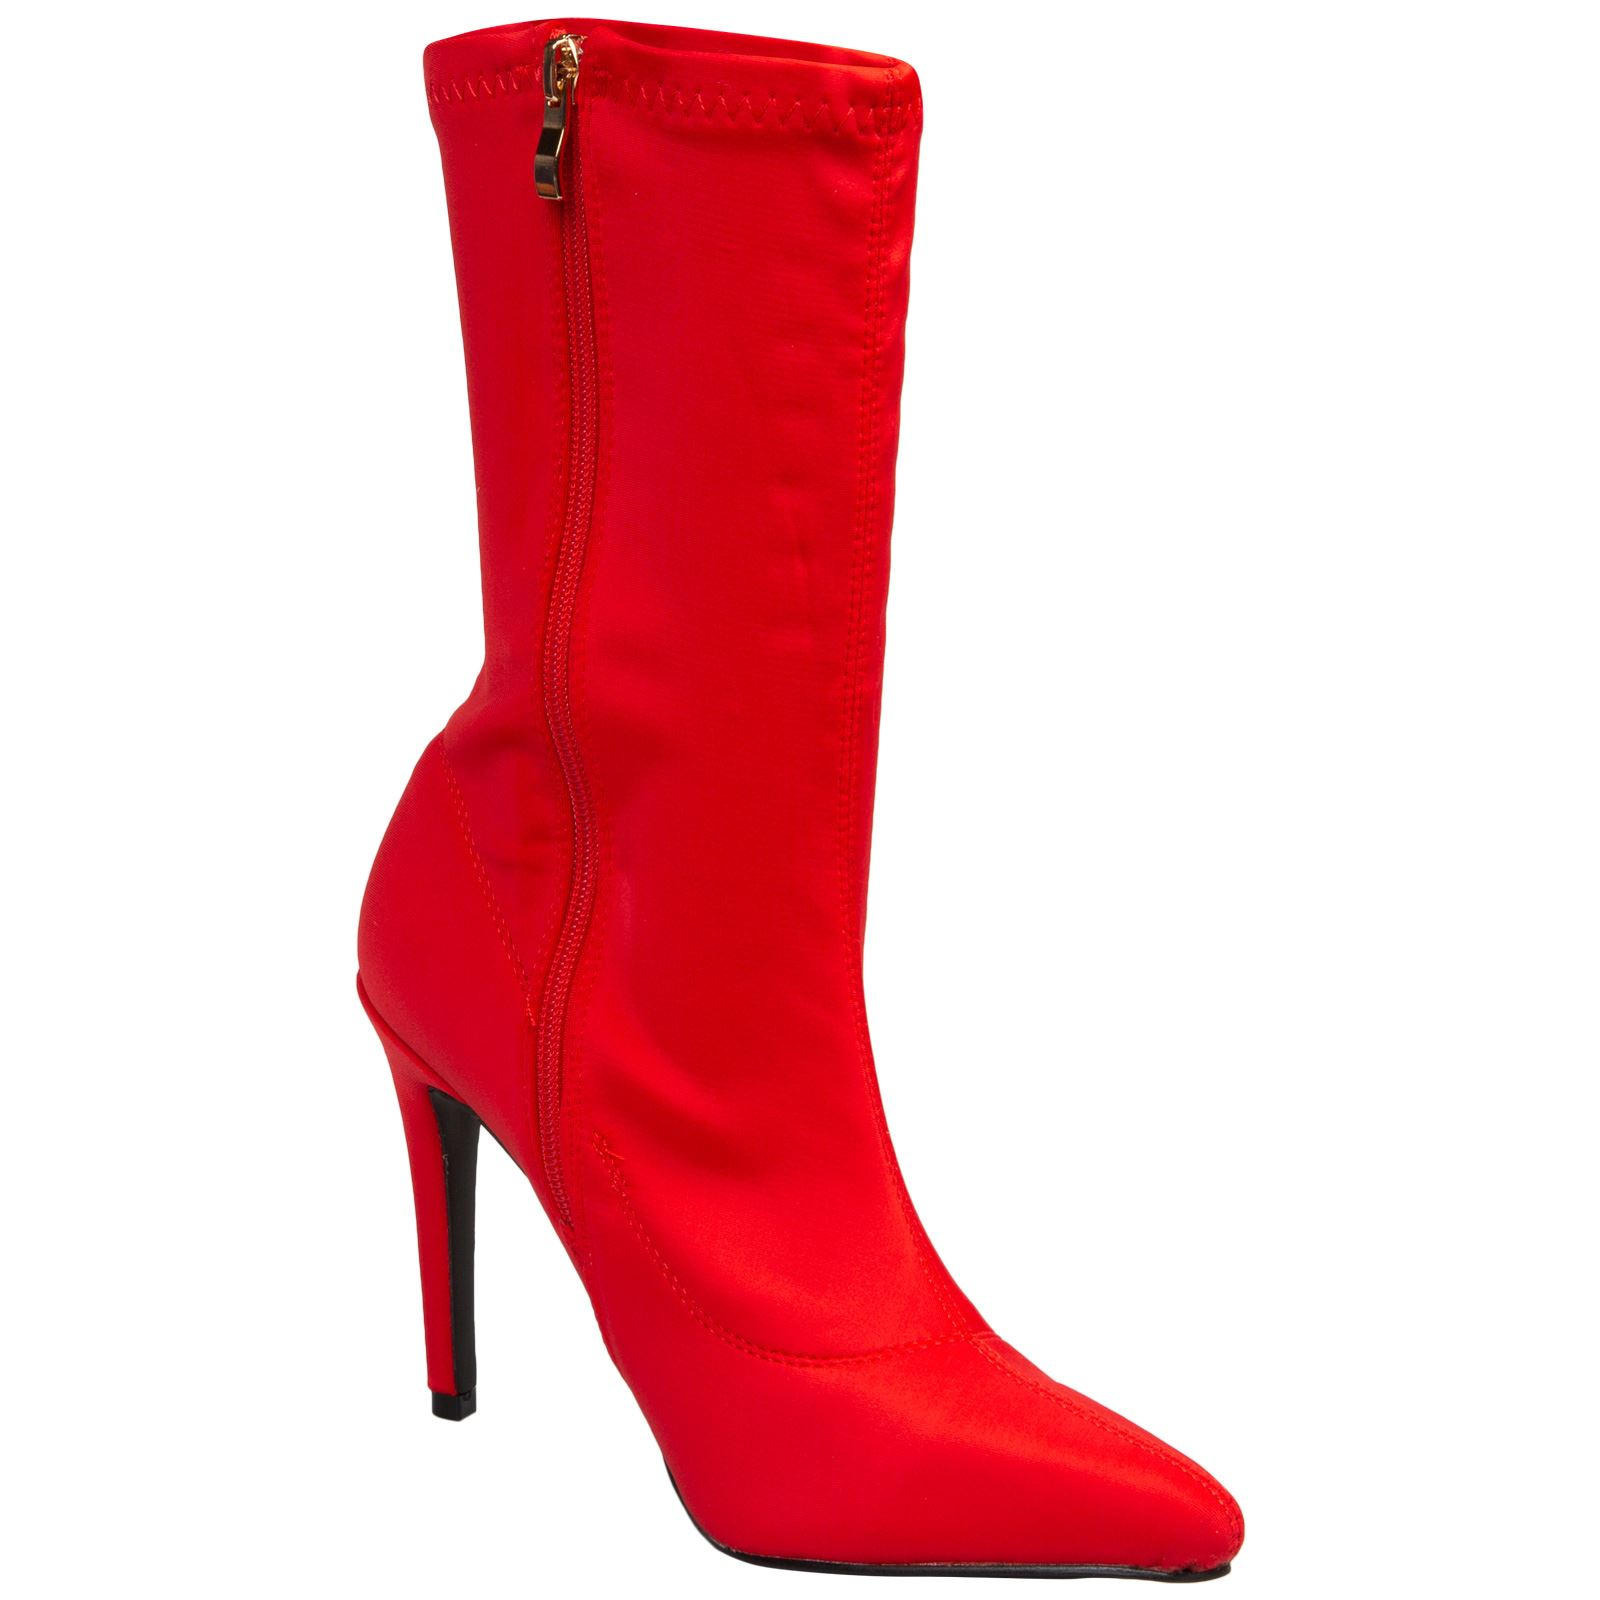 NEW-WOMENS-SHOES-LADIES-ANKLE-BOOTS-ZIP-UP-STRETCH-CALF-STILETTO-FASHION-CASUAL thumbnail 8